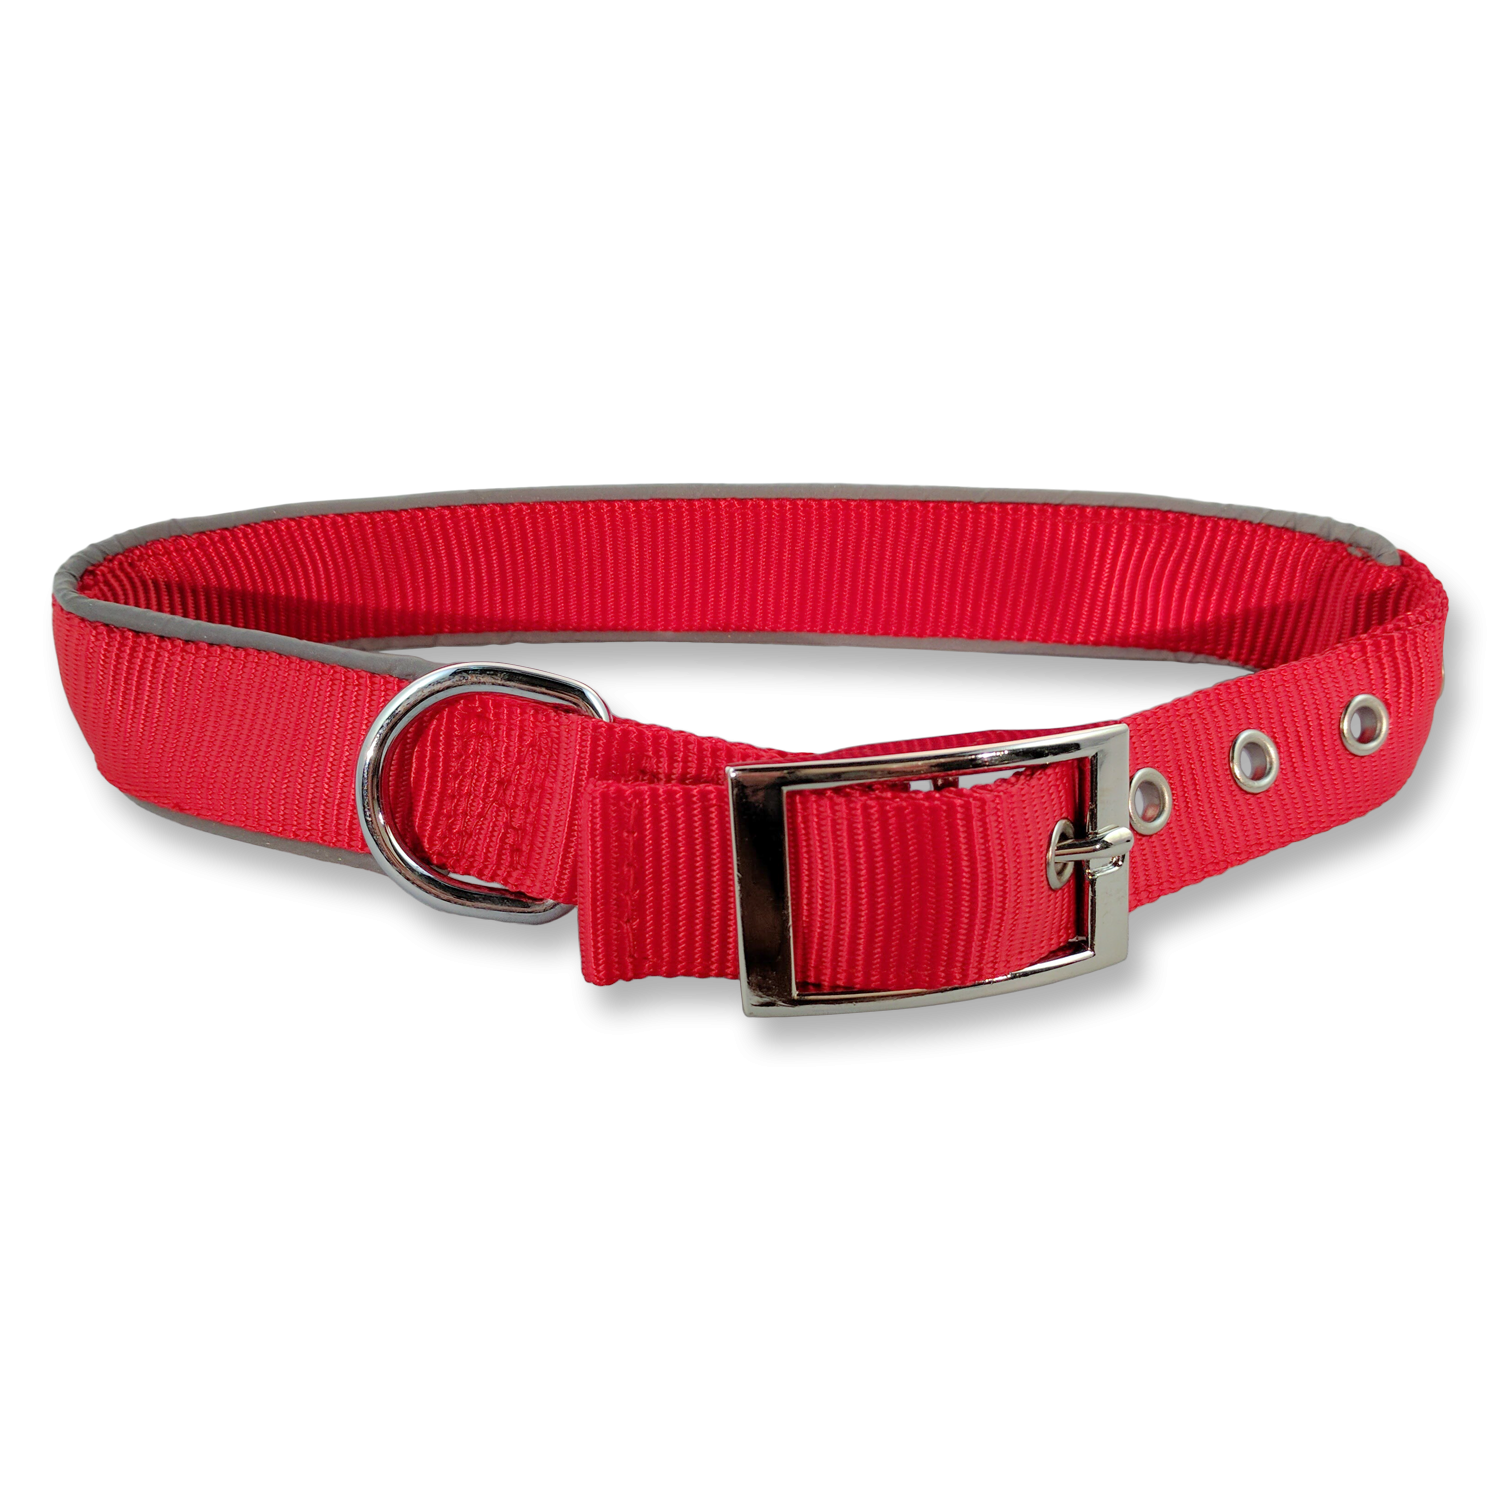 Dog collar png. Service properly identify your